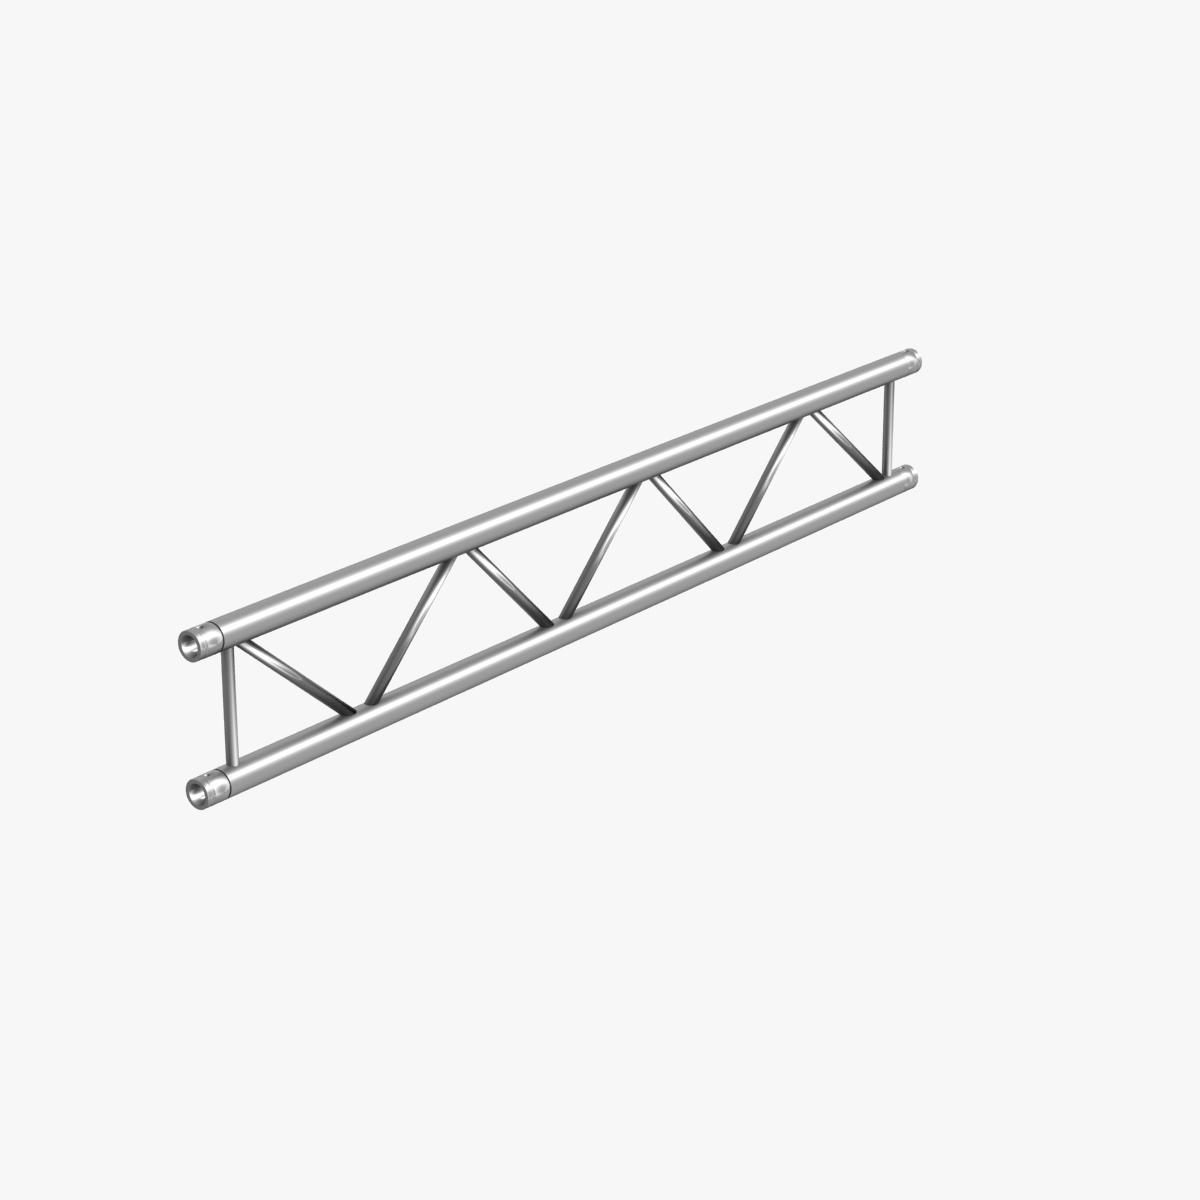 beam trusses (collection 24 modular pieces) 3d model 3ds max dxf fbx bmp blend c4d dae other obj 268721